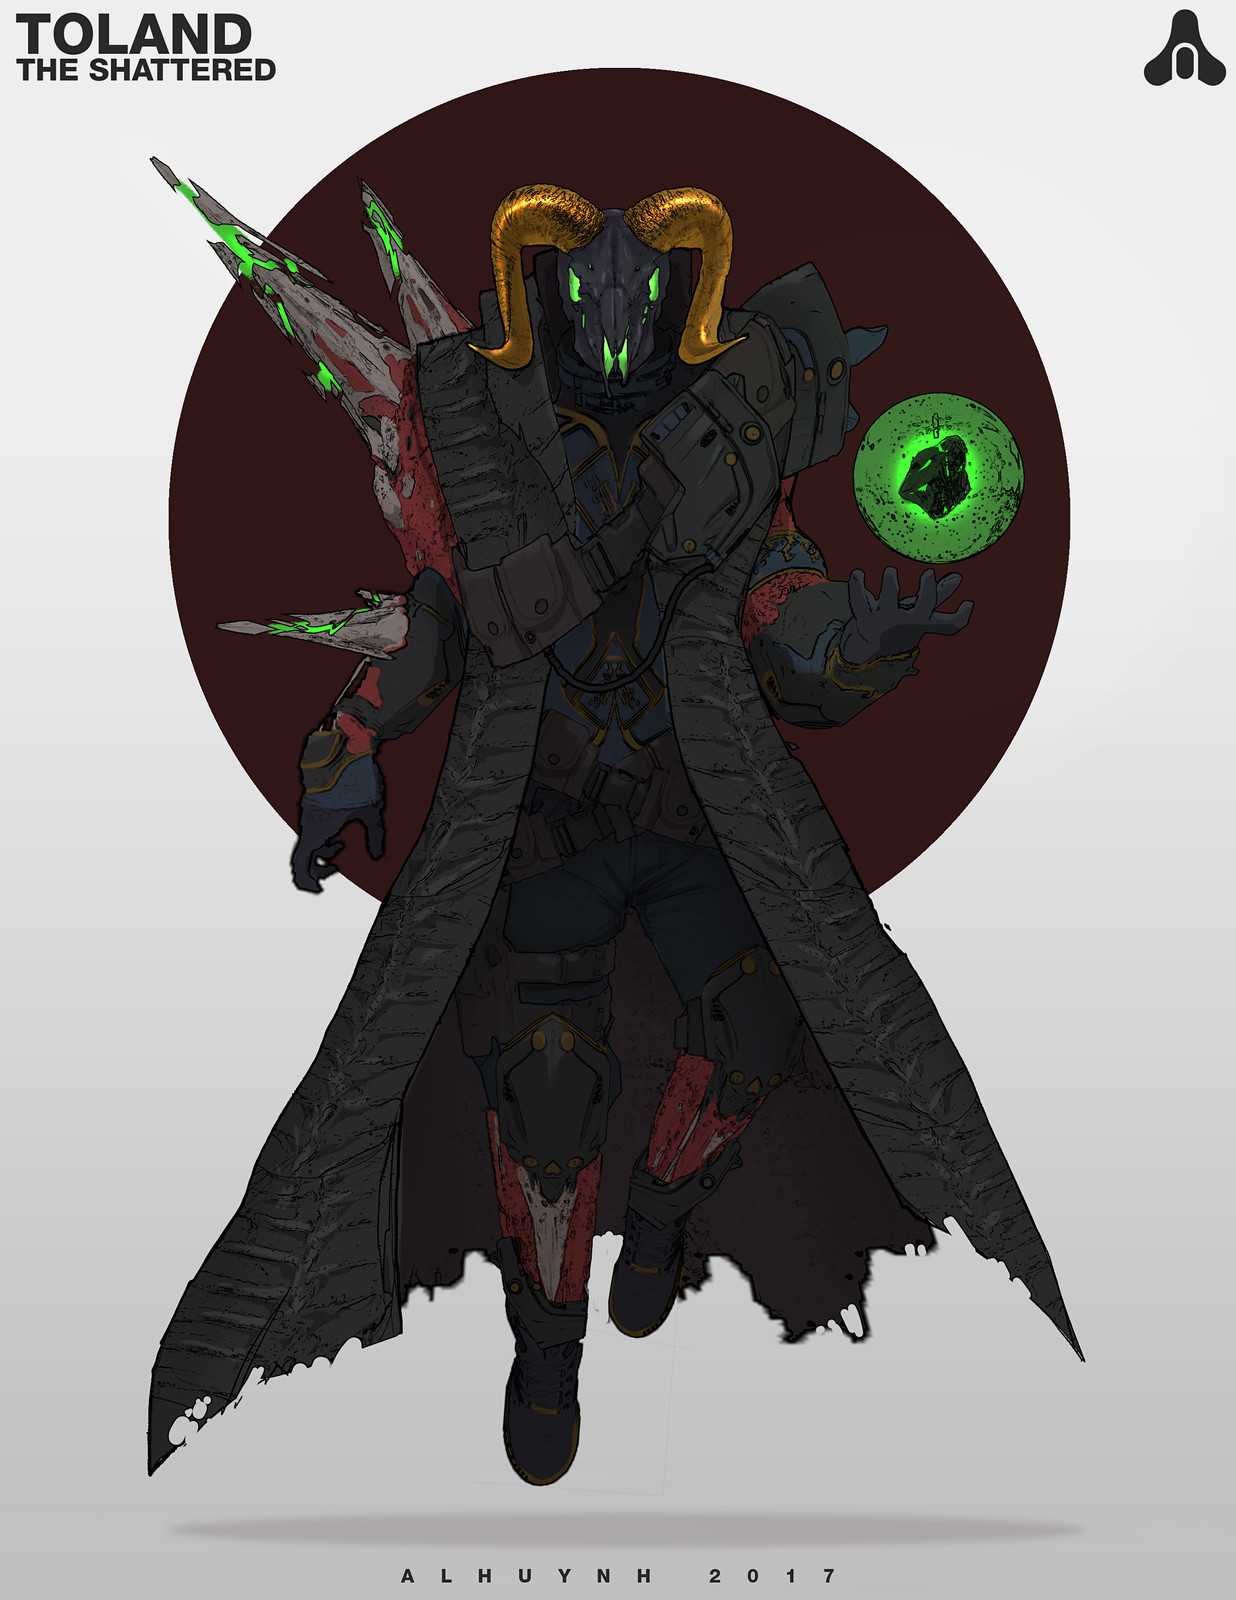 Toland, The Shattered